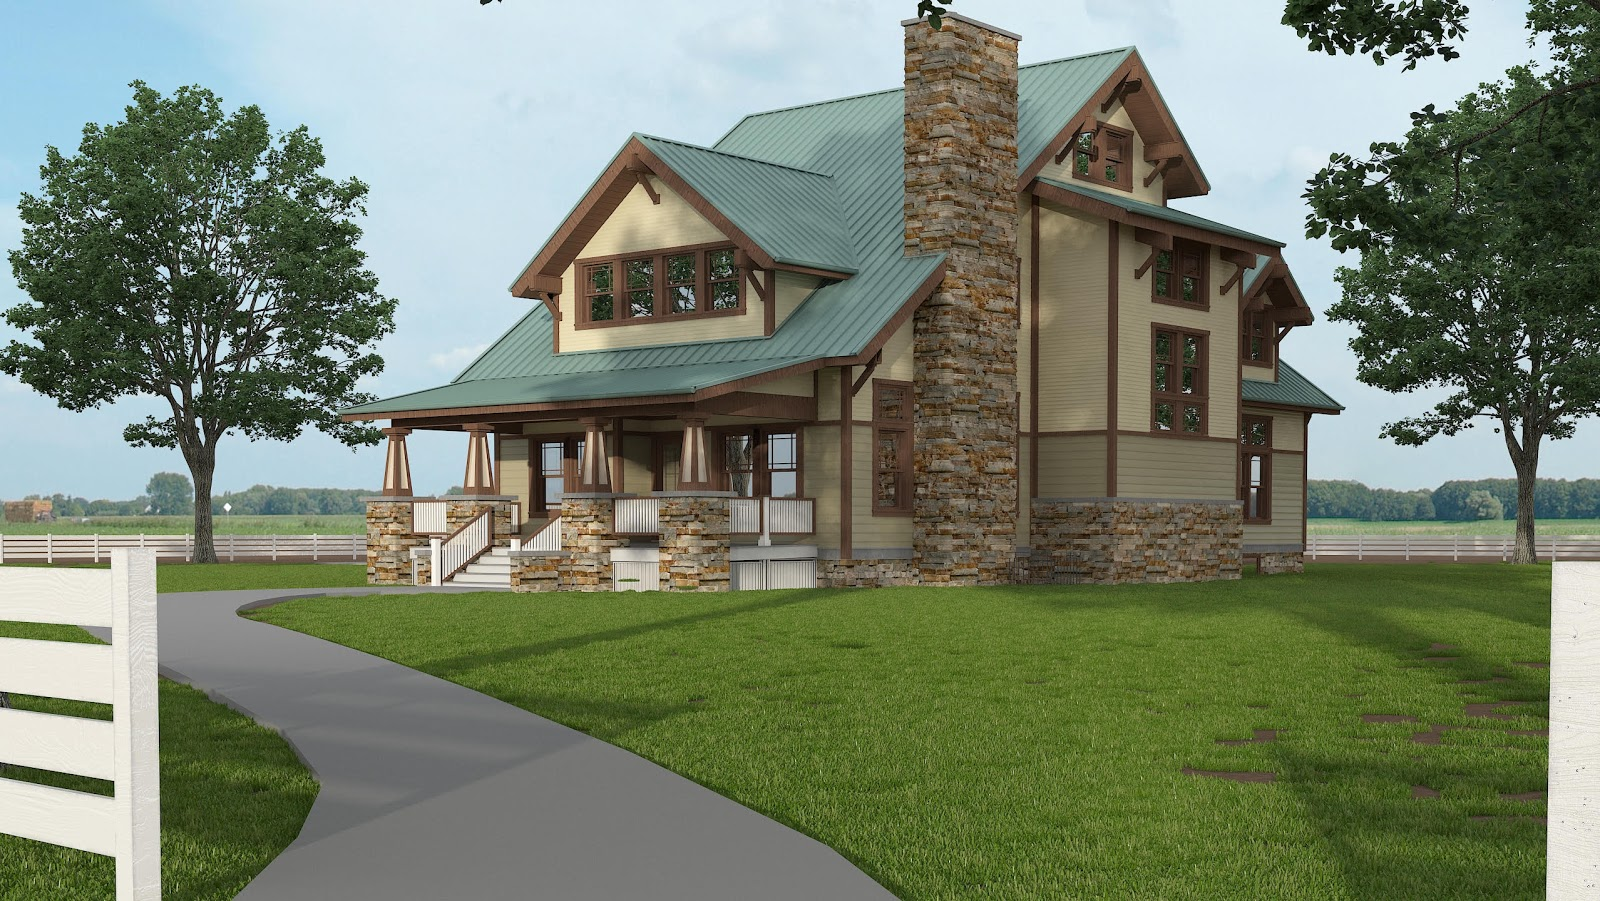 Iowa craftsman style house with family heirlooms